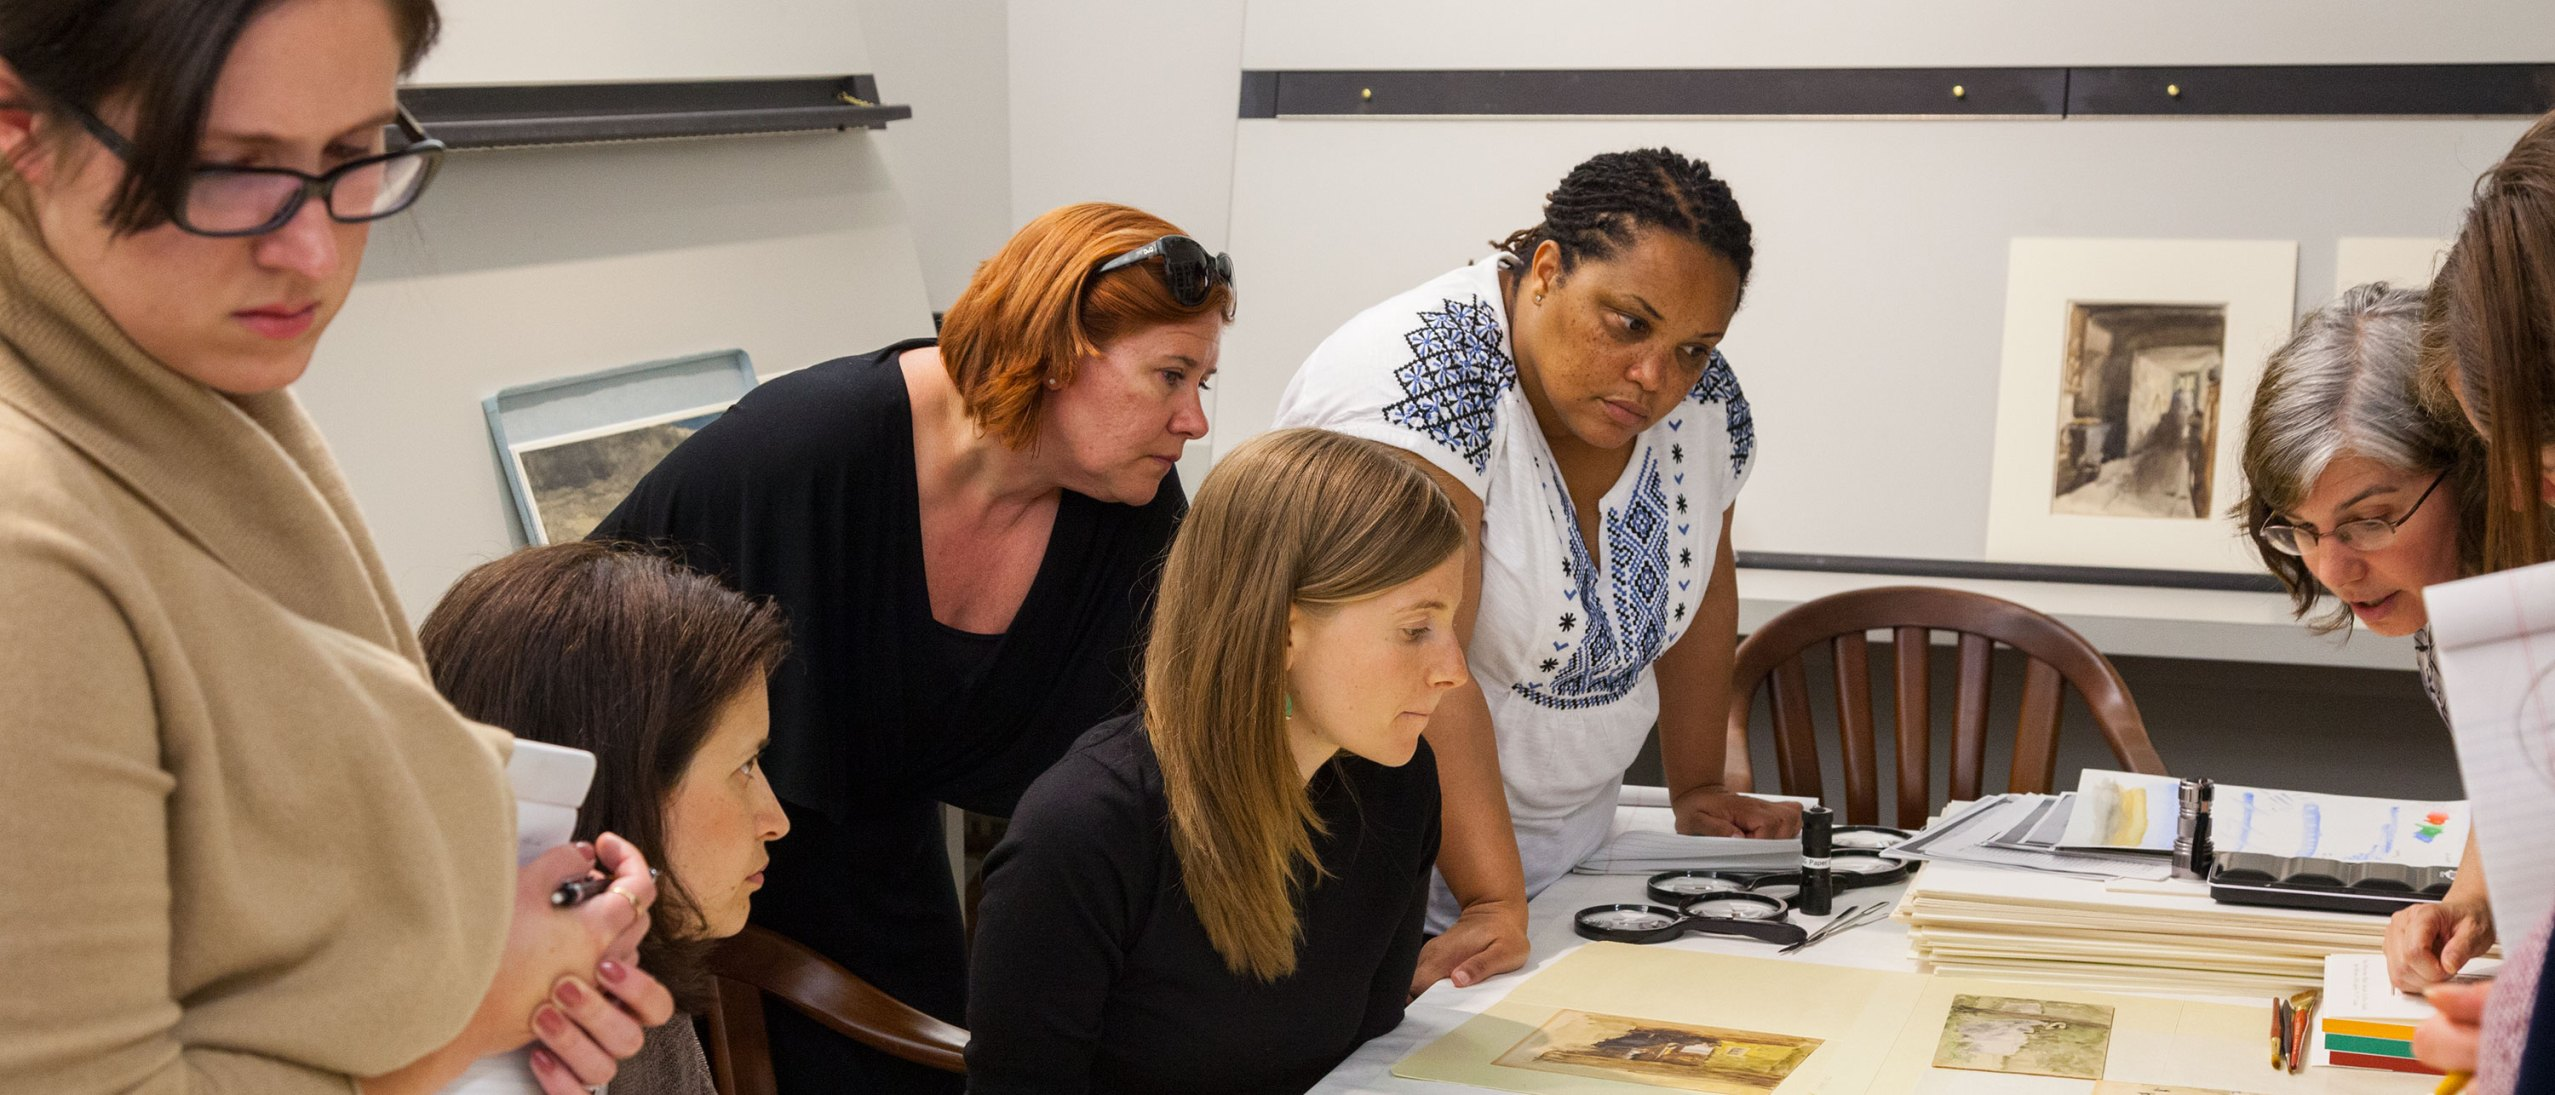 A group of women gather around as a conservator discusses an artwork laid on a table between them